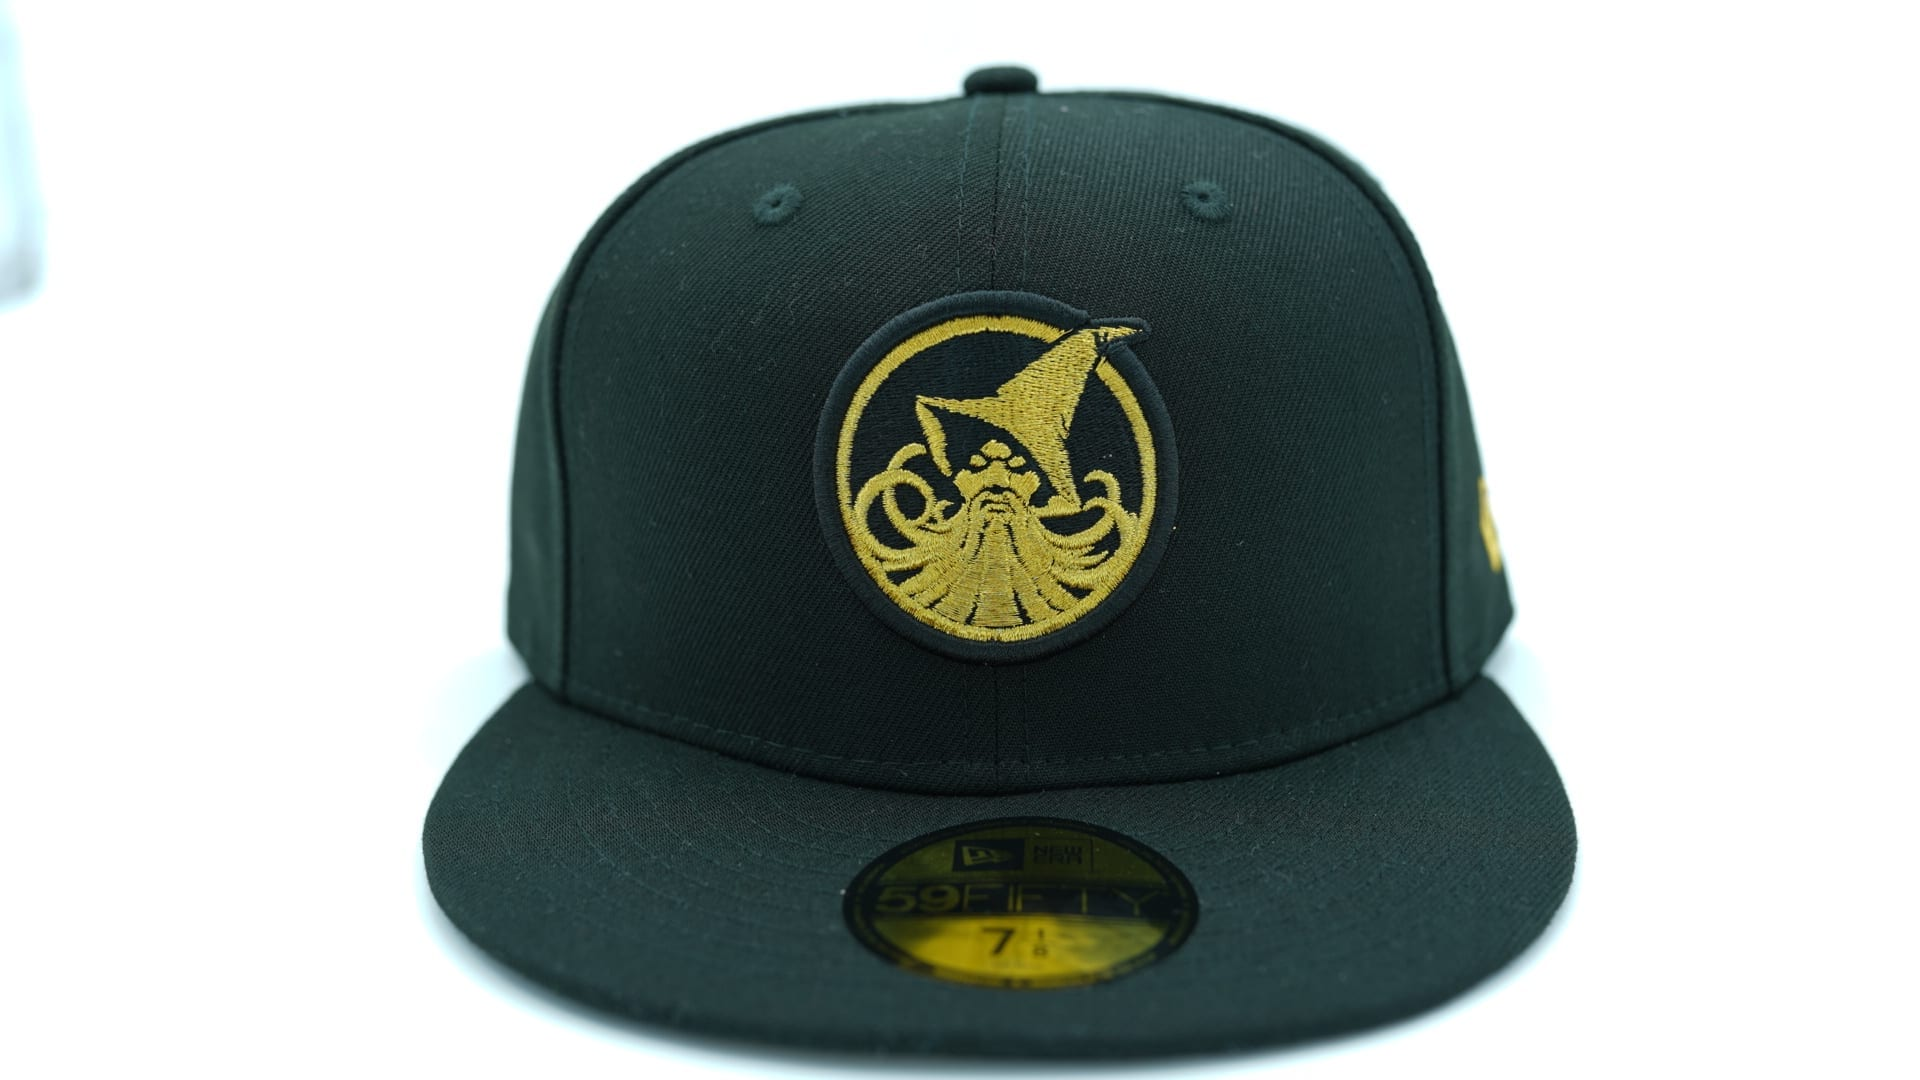 competitive price 22f48 cc2be new orleans pelicans encoder franchise fitted baseball cap 47 brand nba